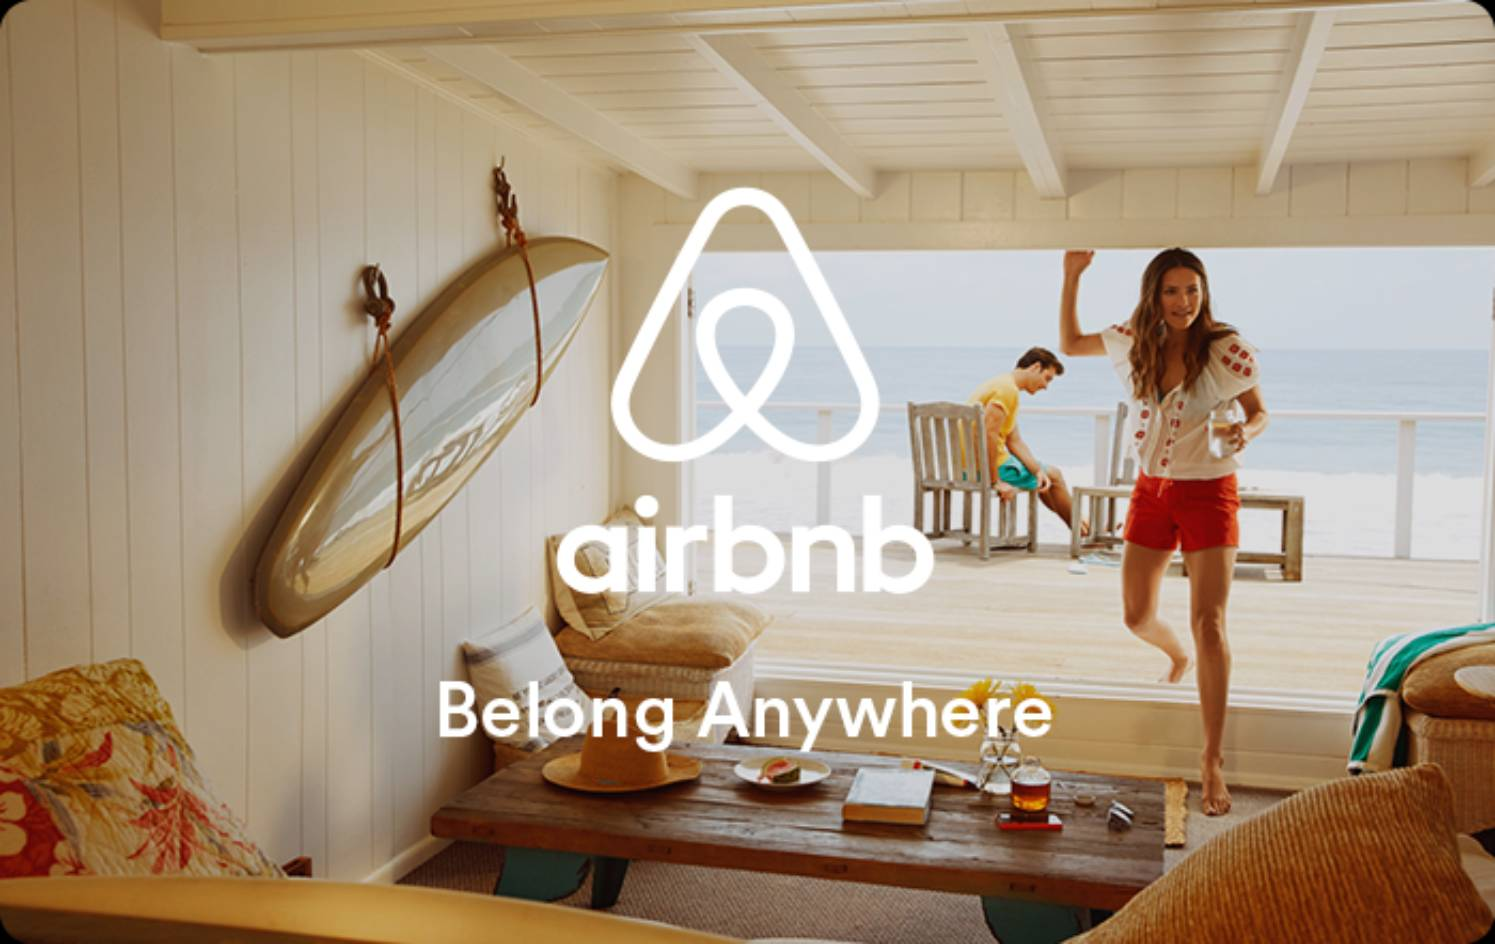 Airbnb Scams 5 Airbnb Tips To Protect You From Scams Money Datahand